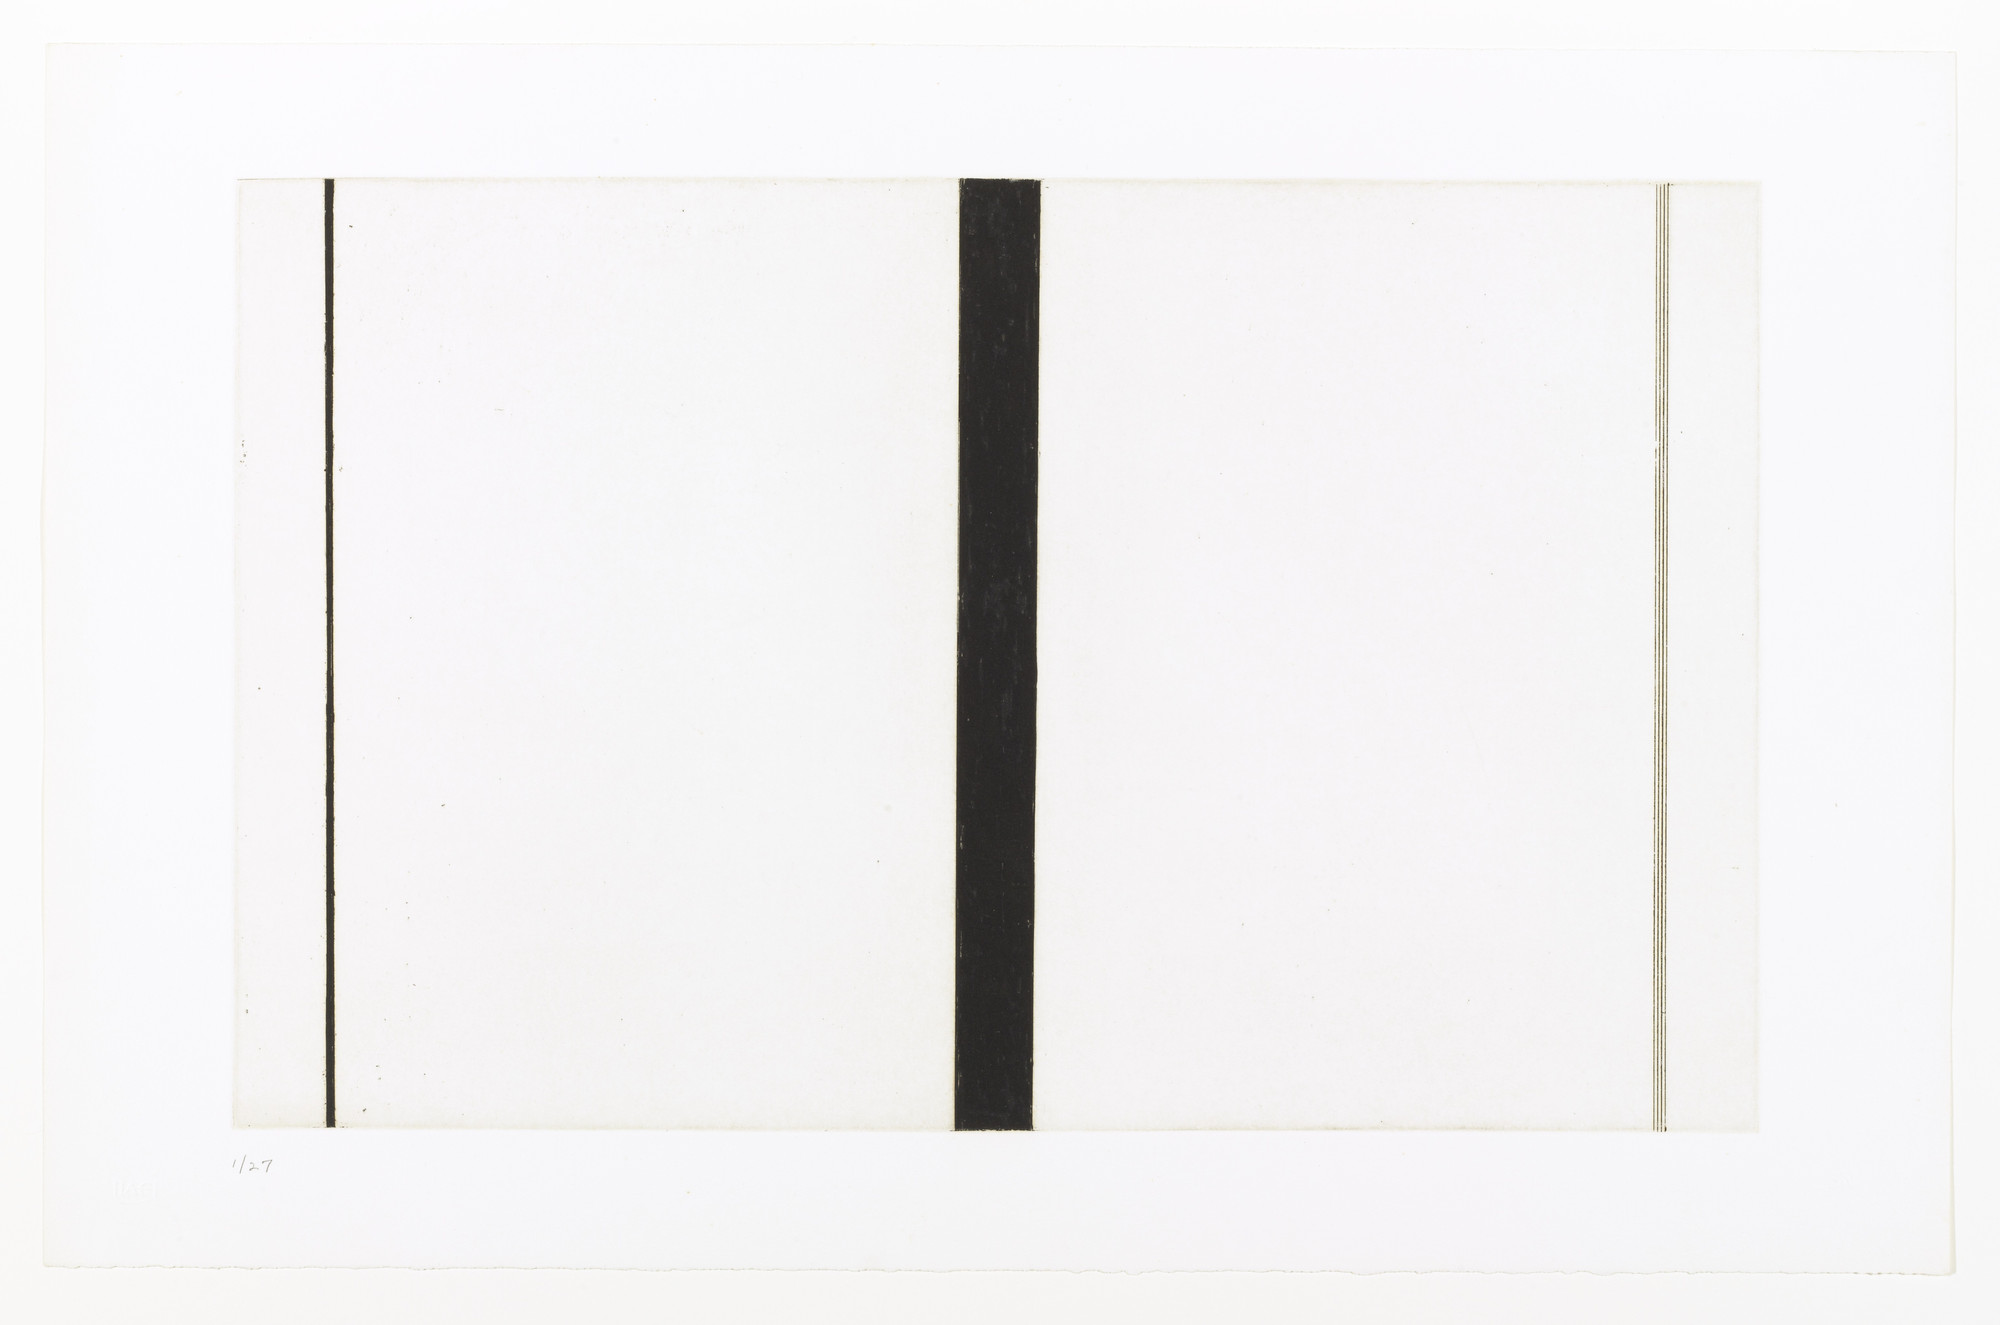 Barnett Newman. Untitled Etching #1 (First Version). 1969, published 1976